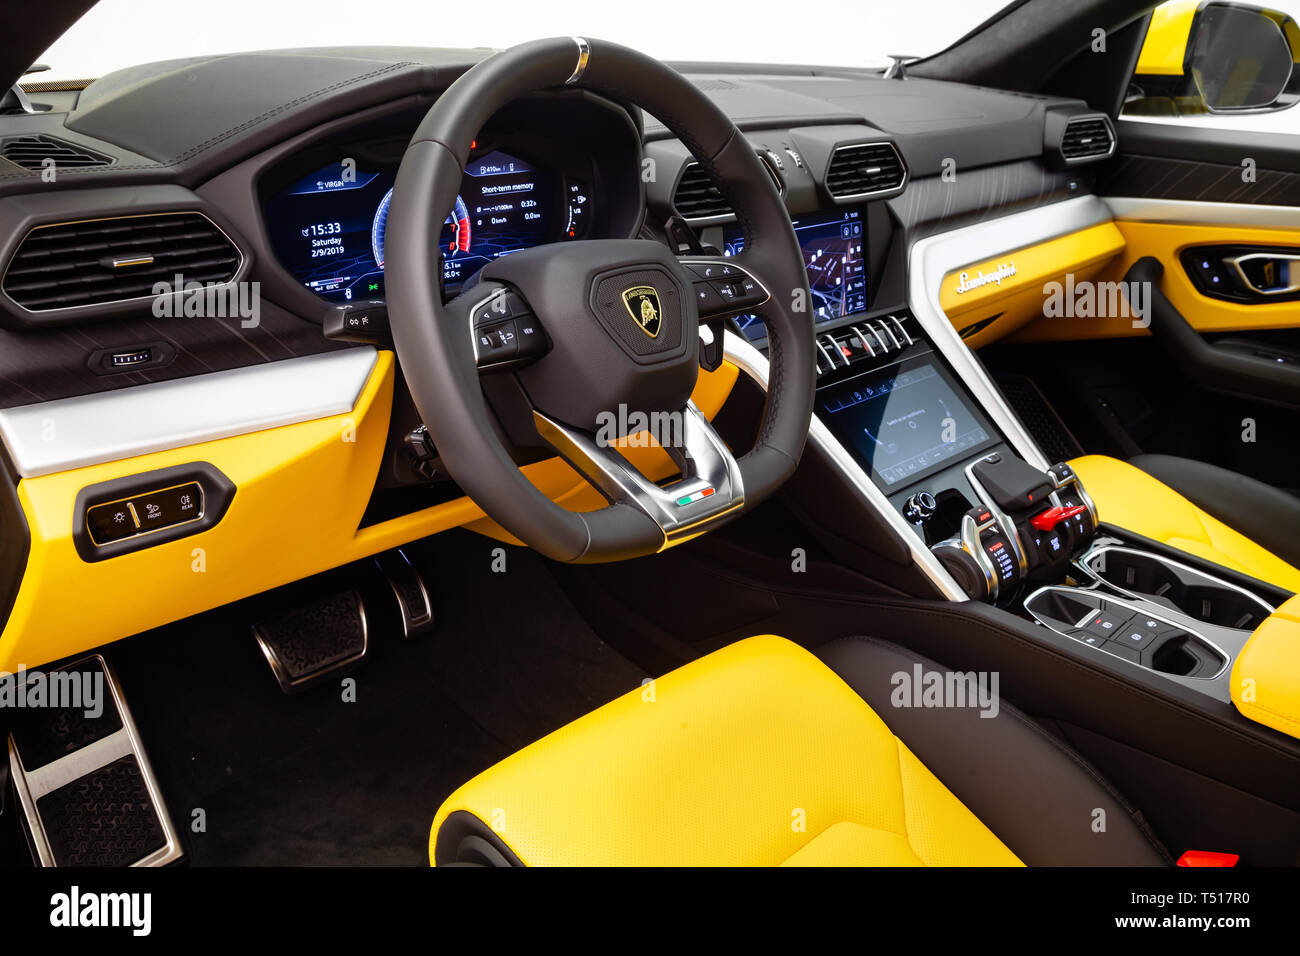 2019 Lamborghini Urus Stock Photo 244046516 , Alamy